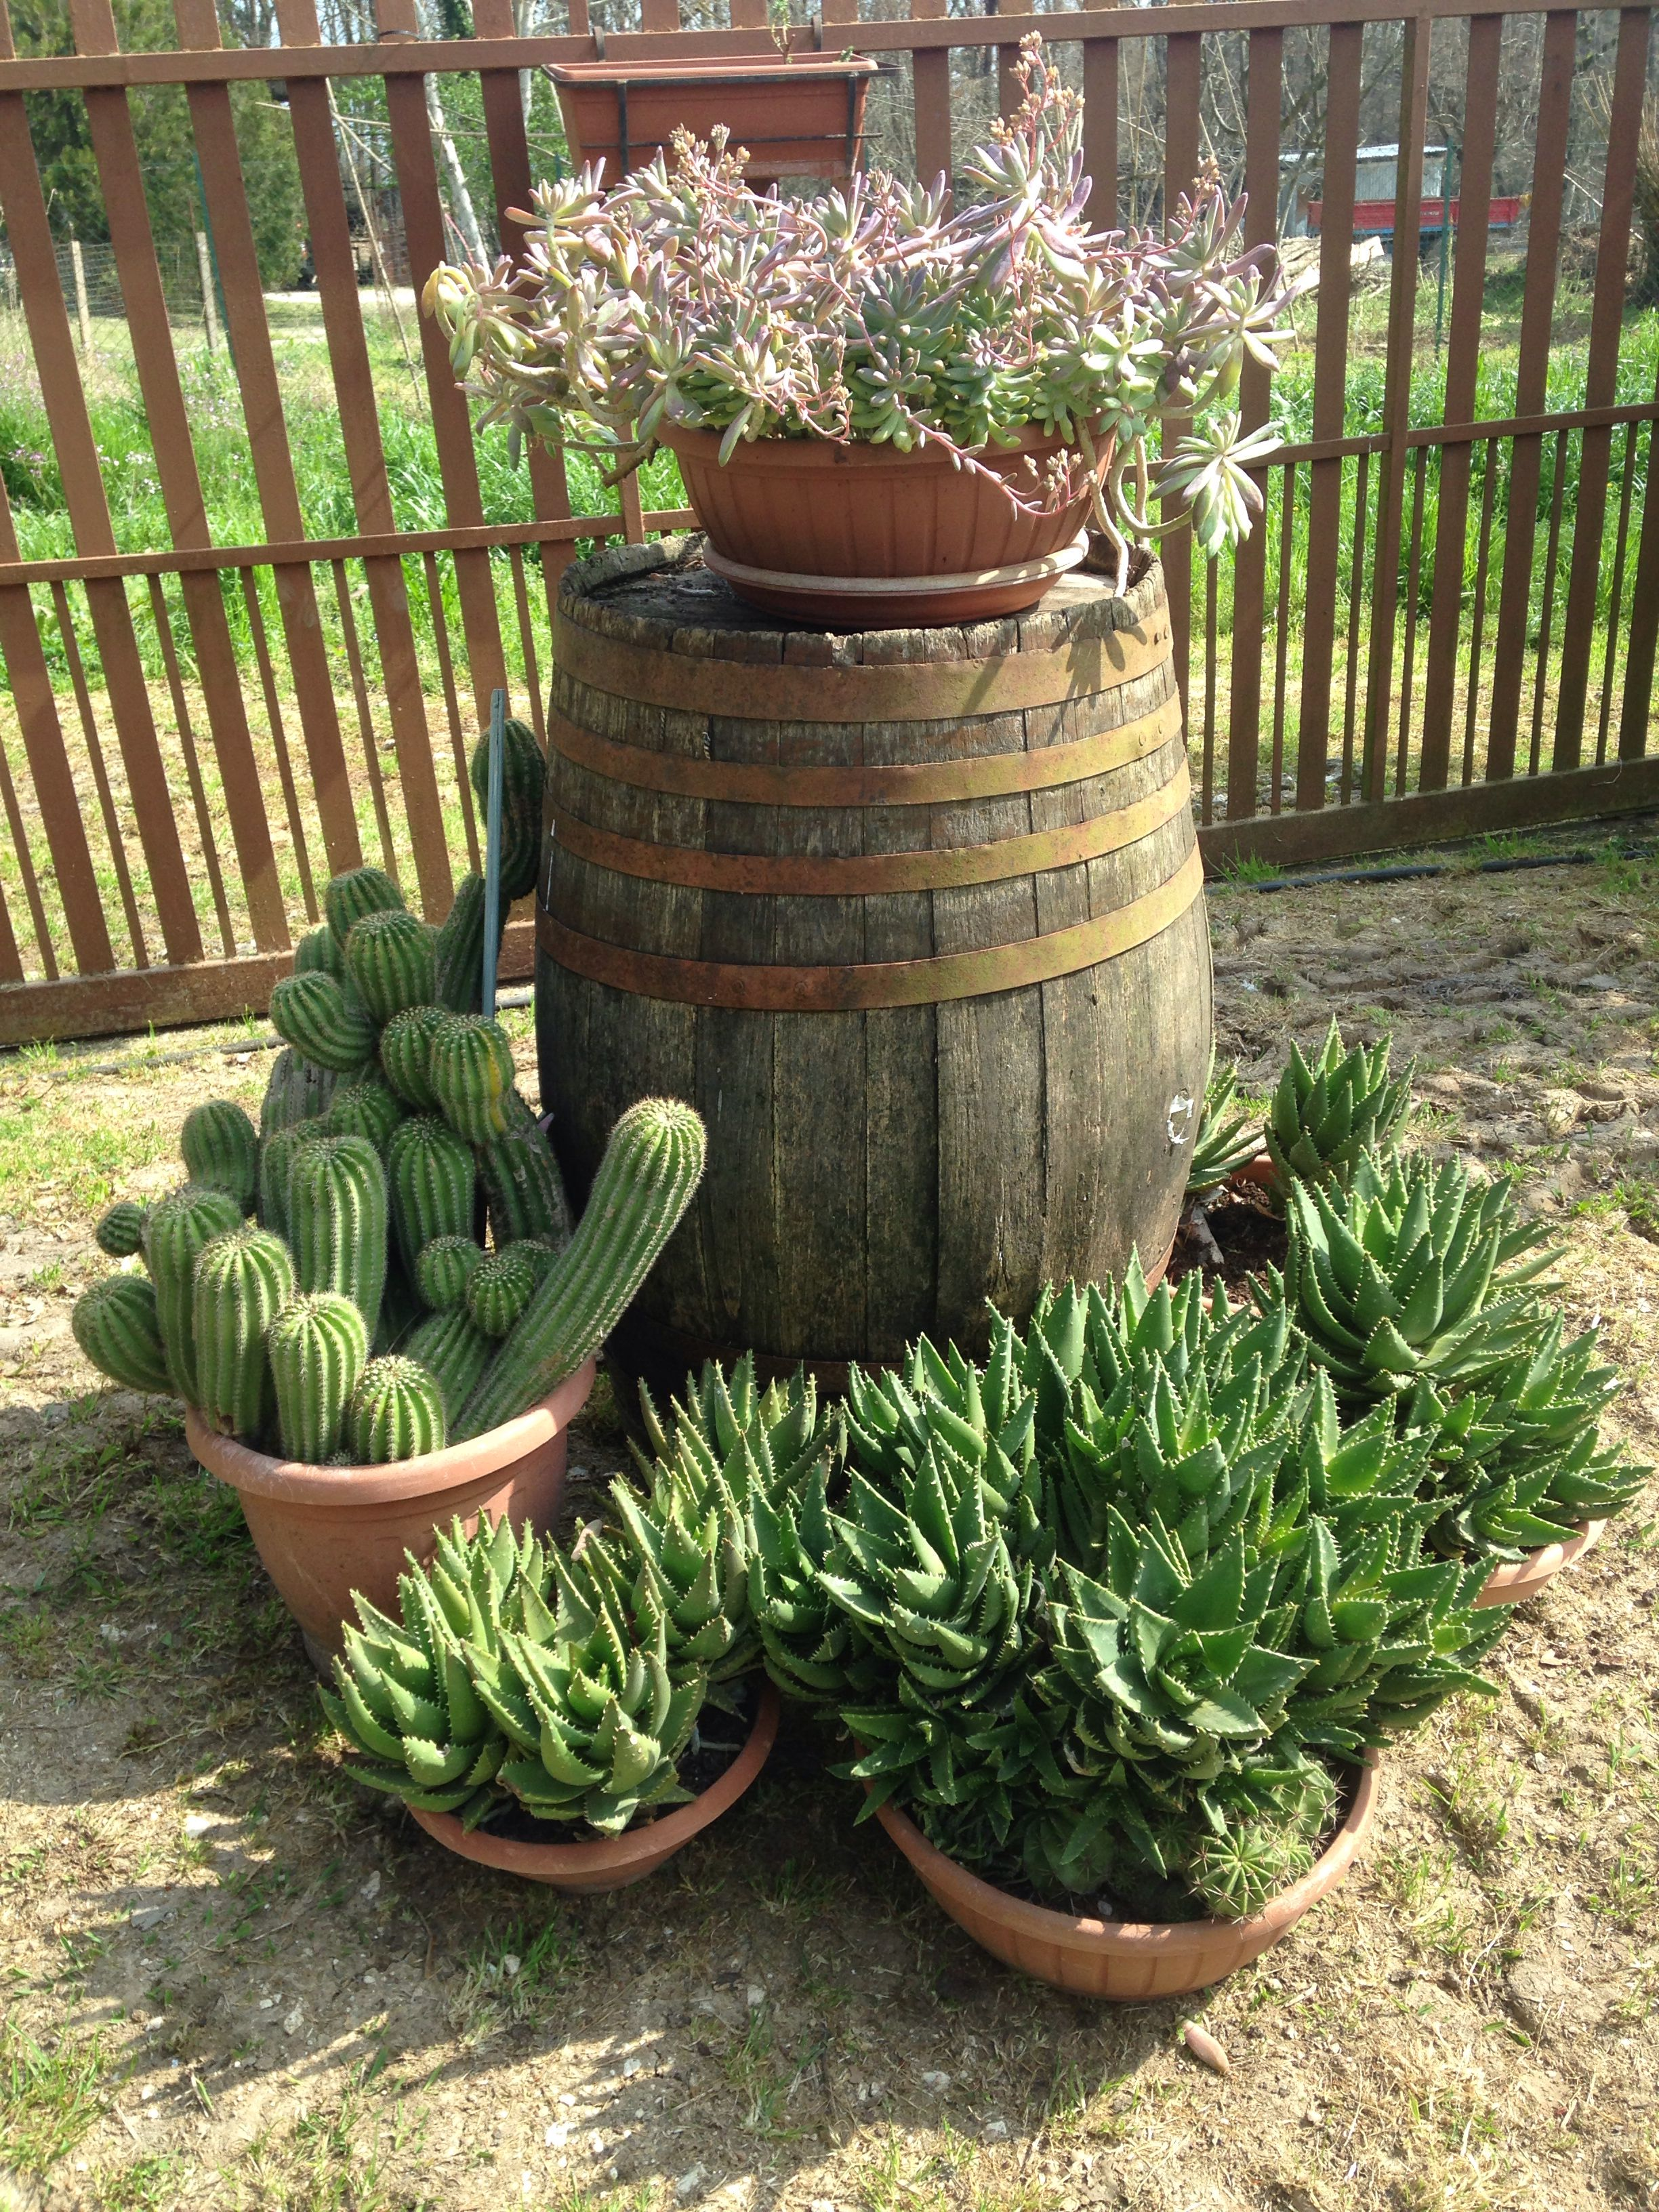 What you can do with an old wine barrel